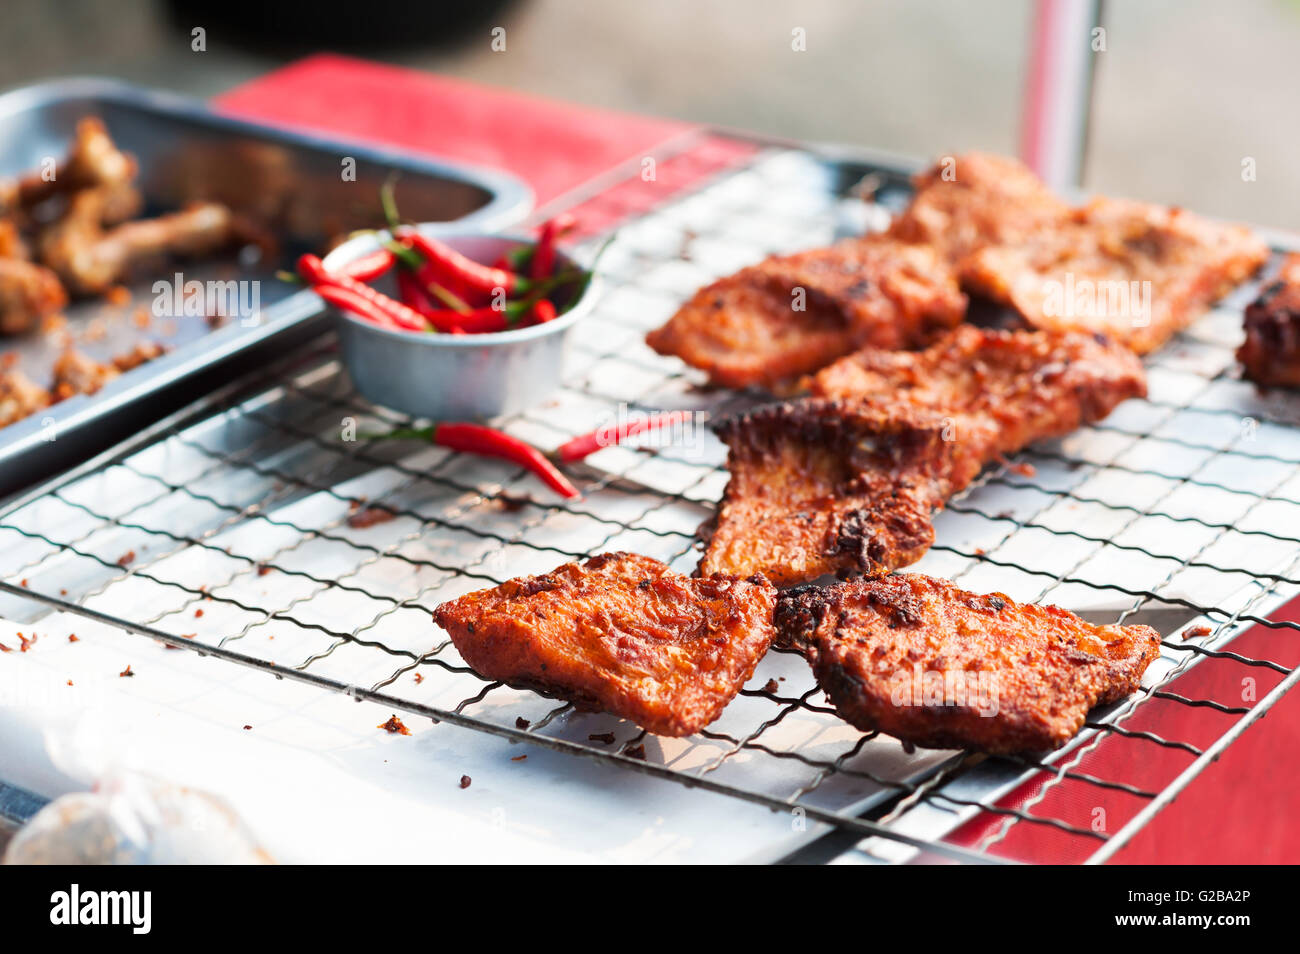 An fried Fish in market place . - Stock Image